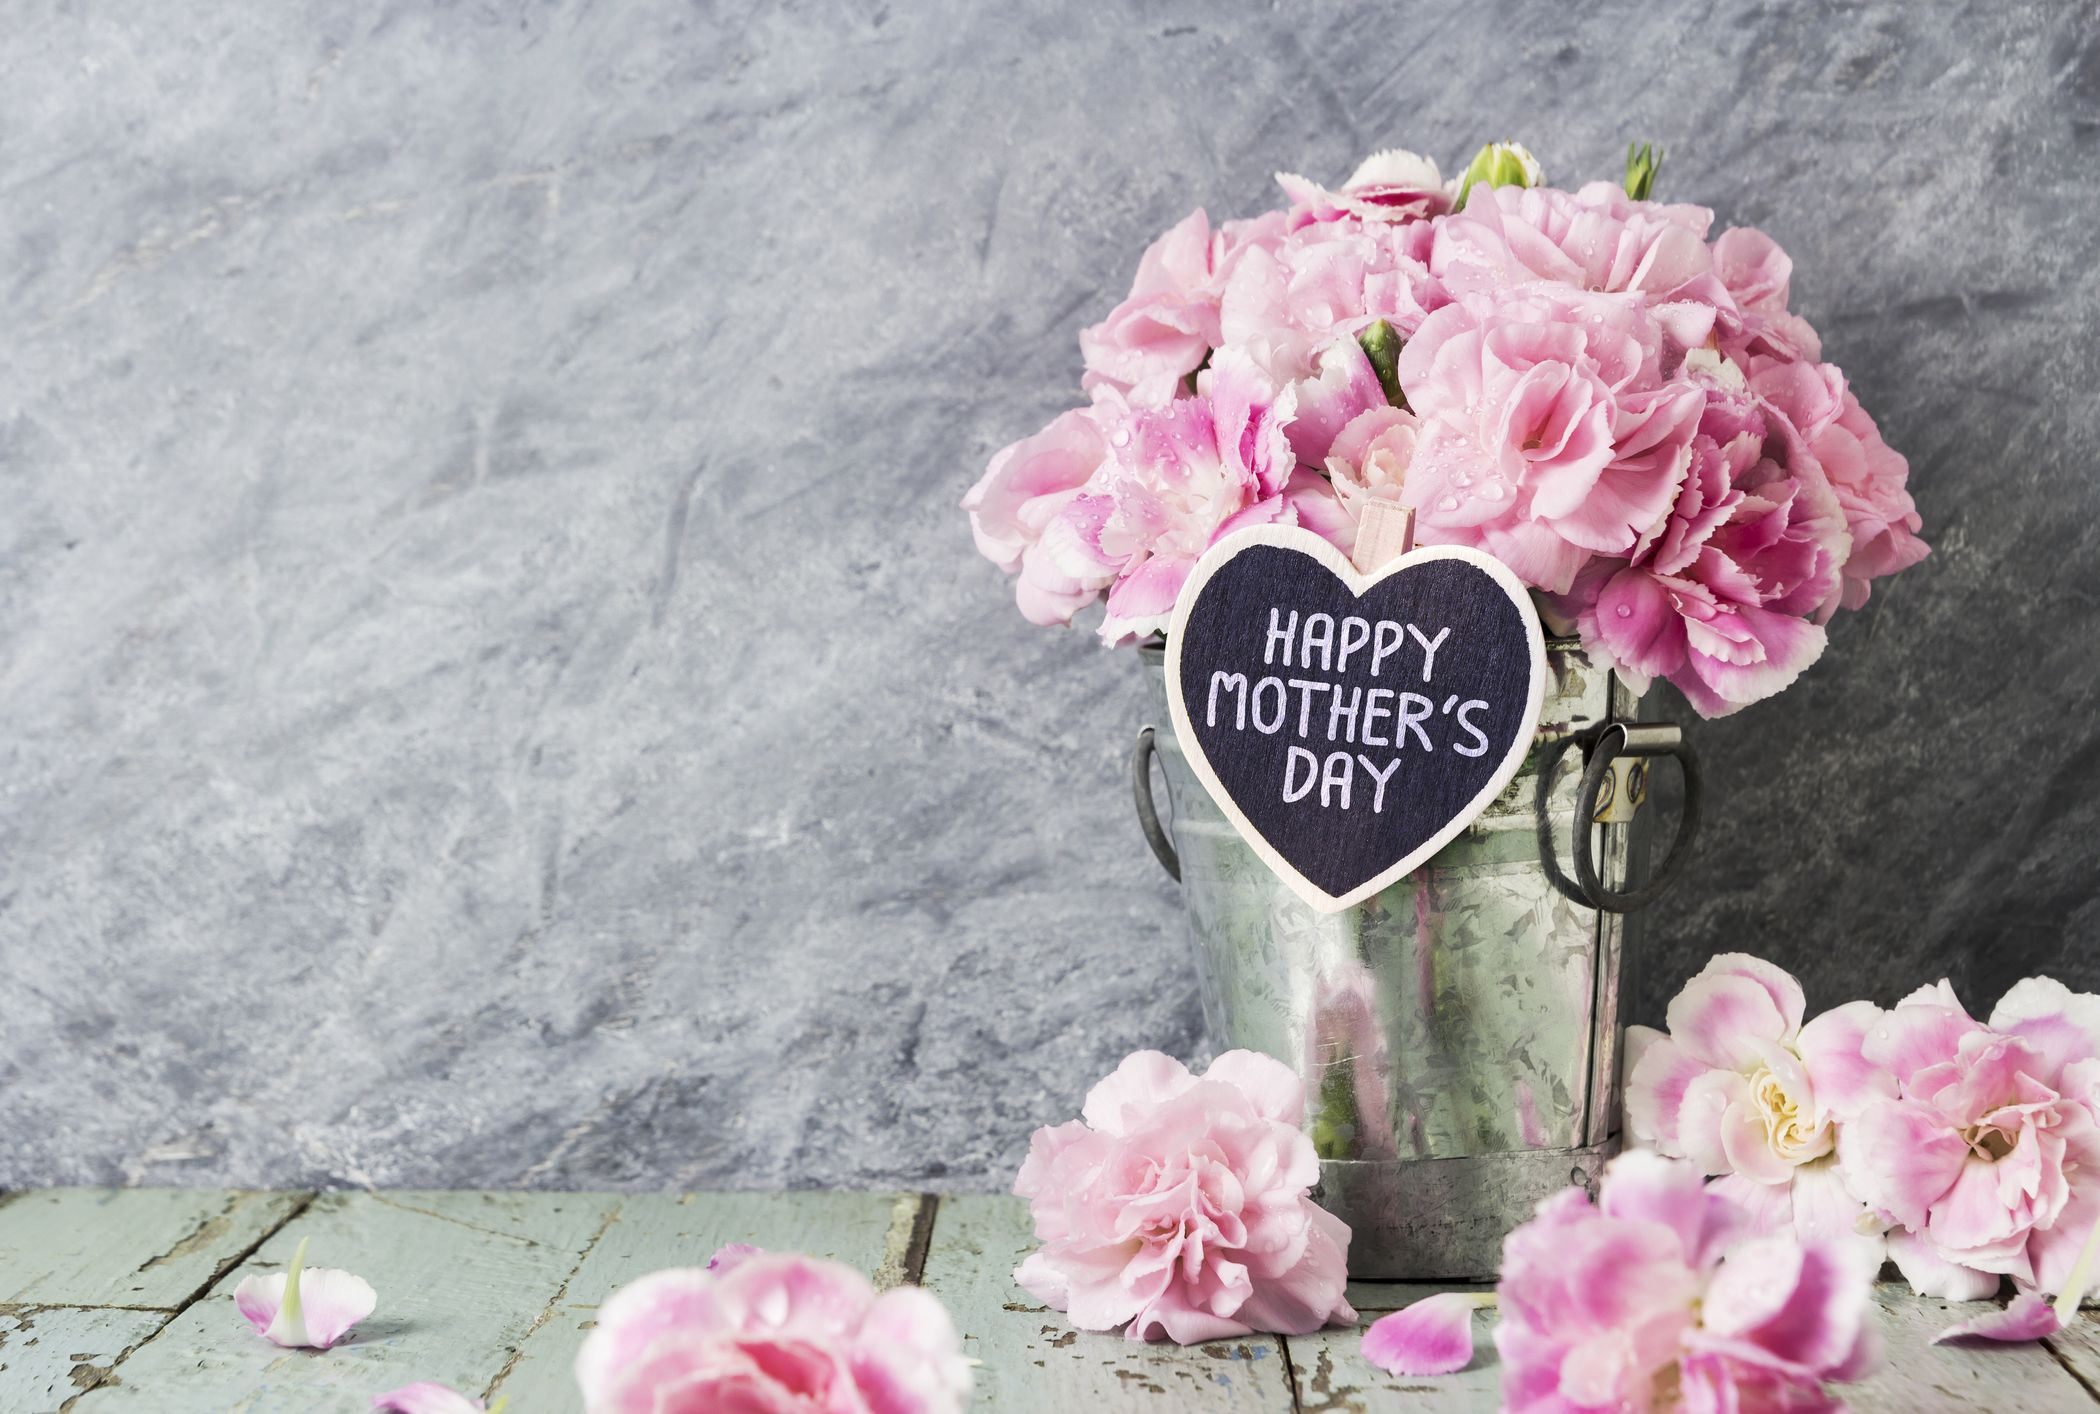 Happy Mothers Day 2021 Images